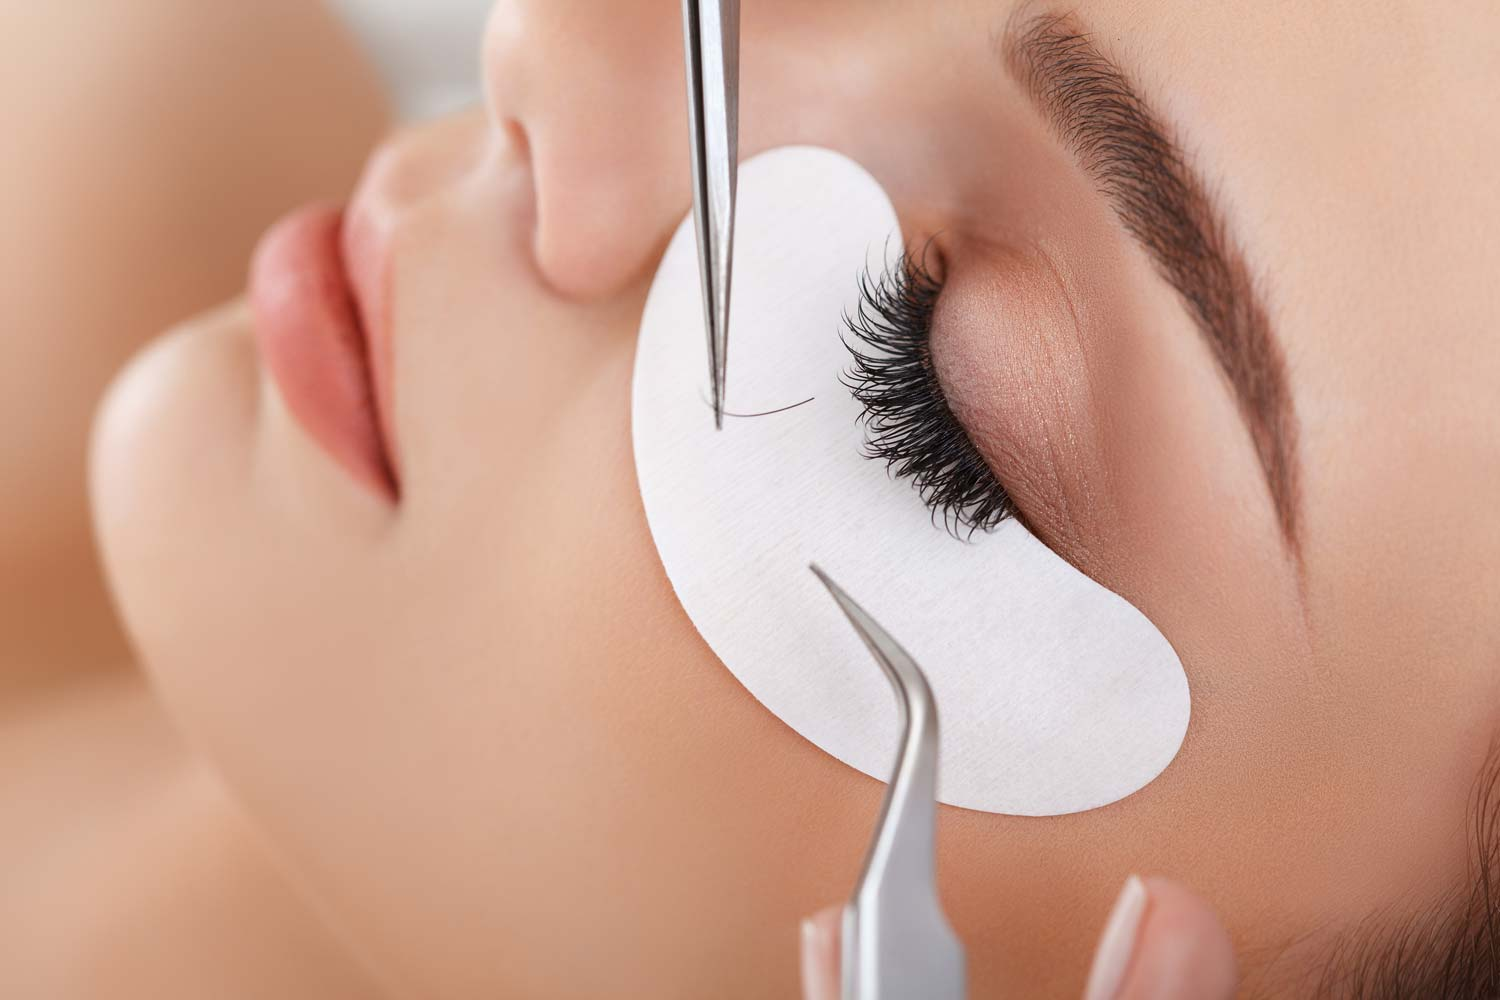 Kelly Ann's Beauty Eyelash Treatments